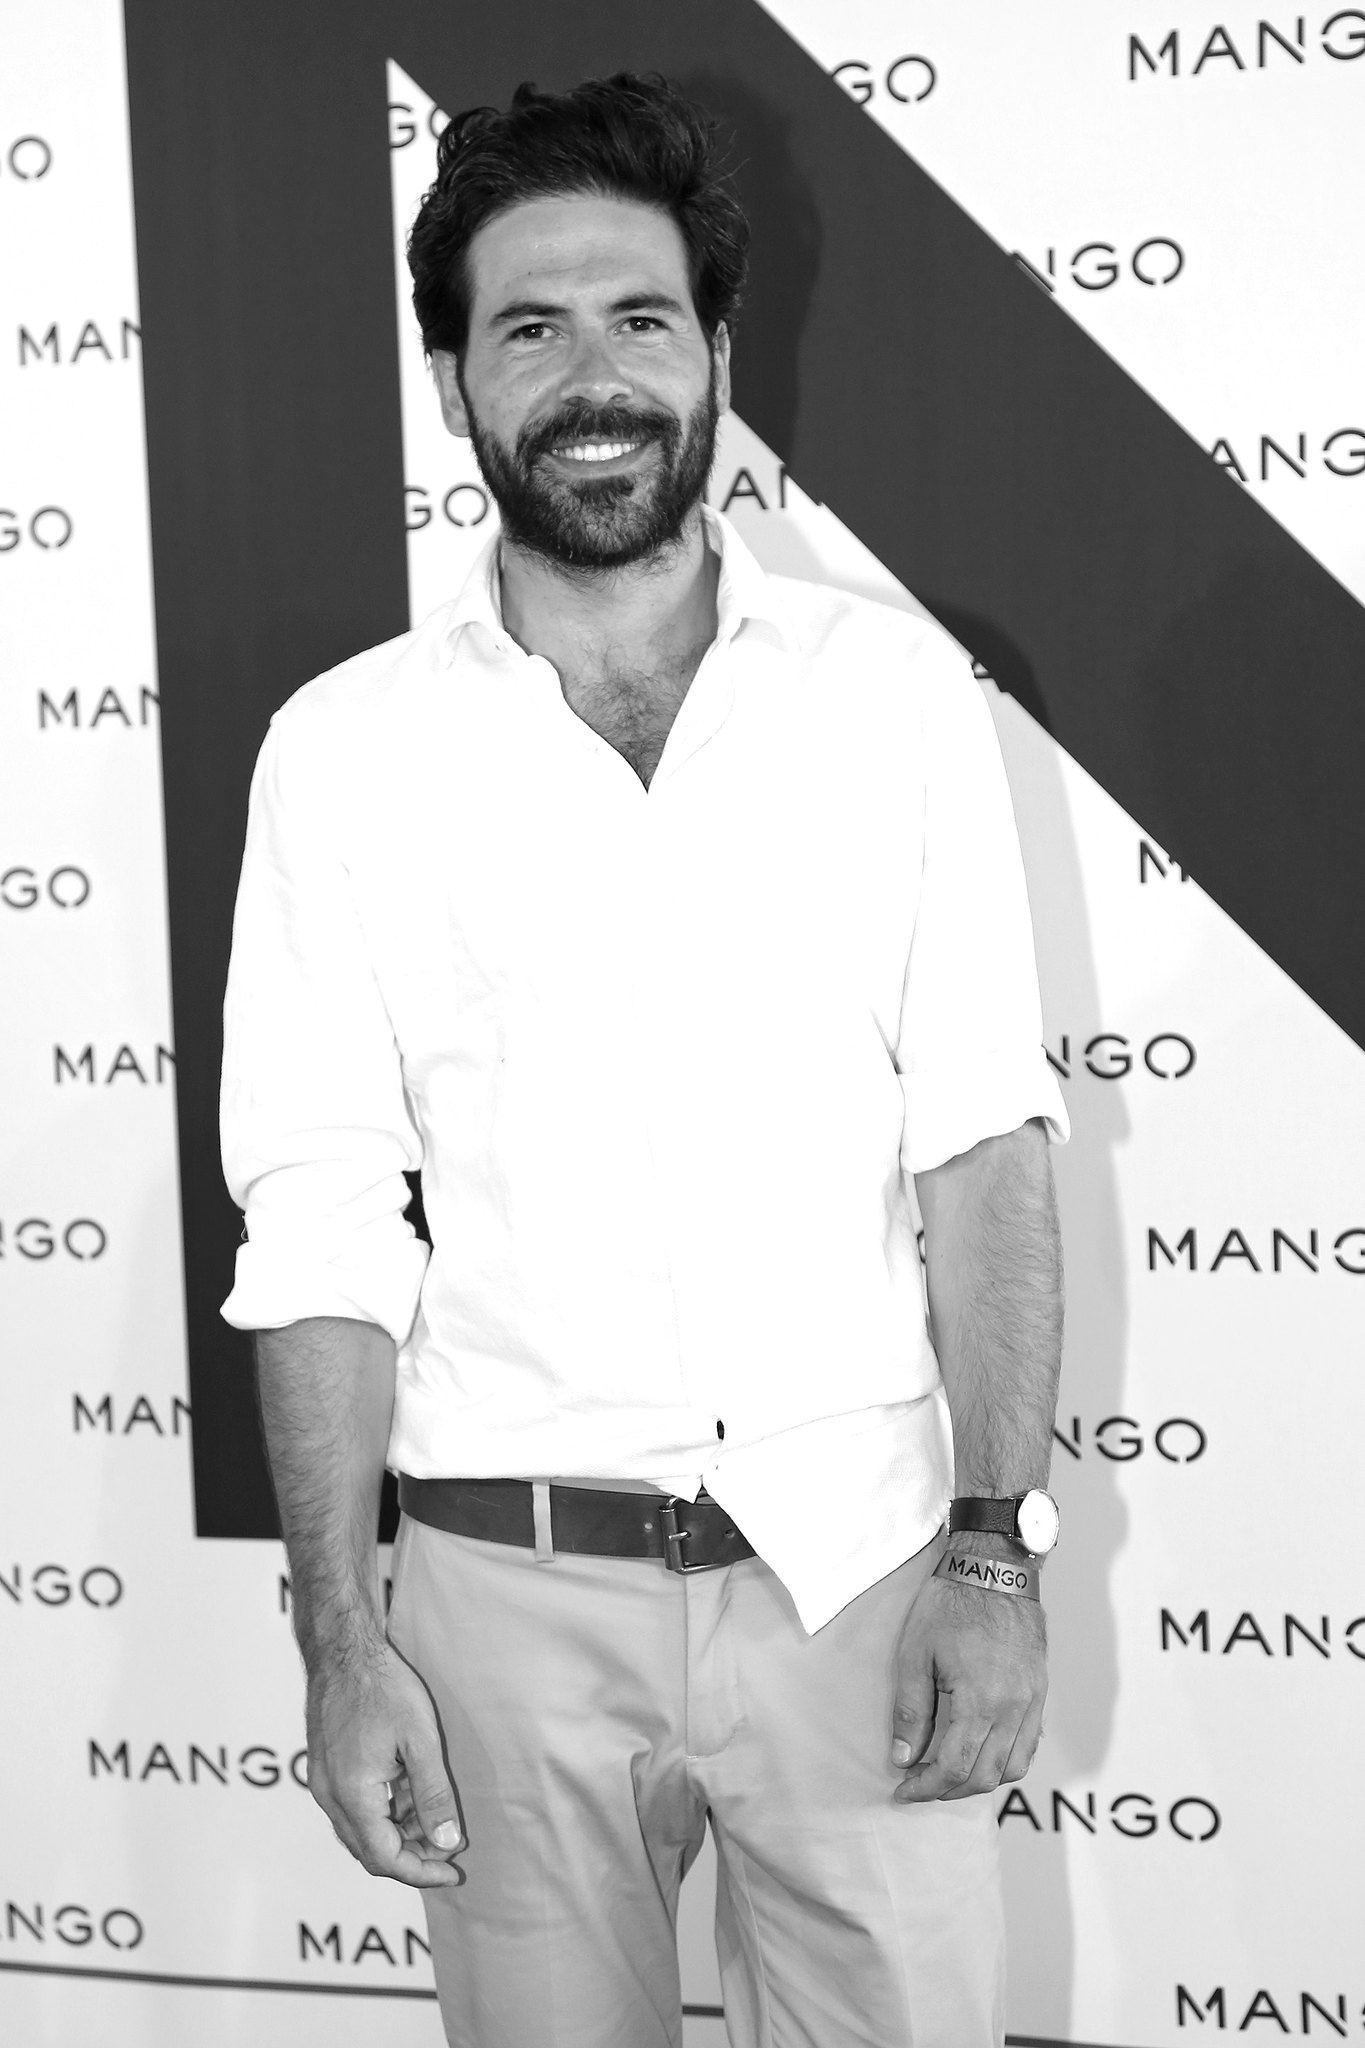 _miguel_carrizo_mango_fashion_show_photo_call_